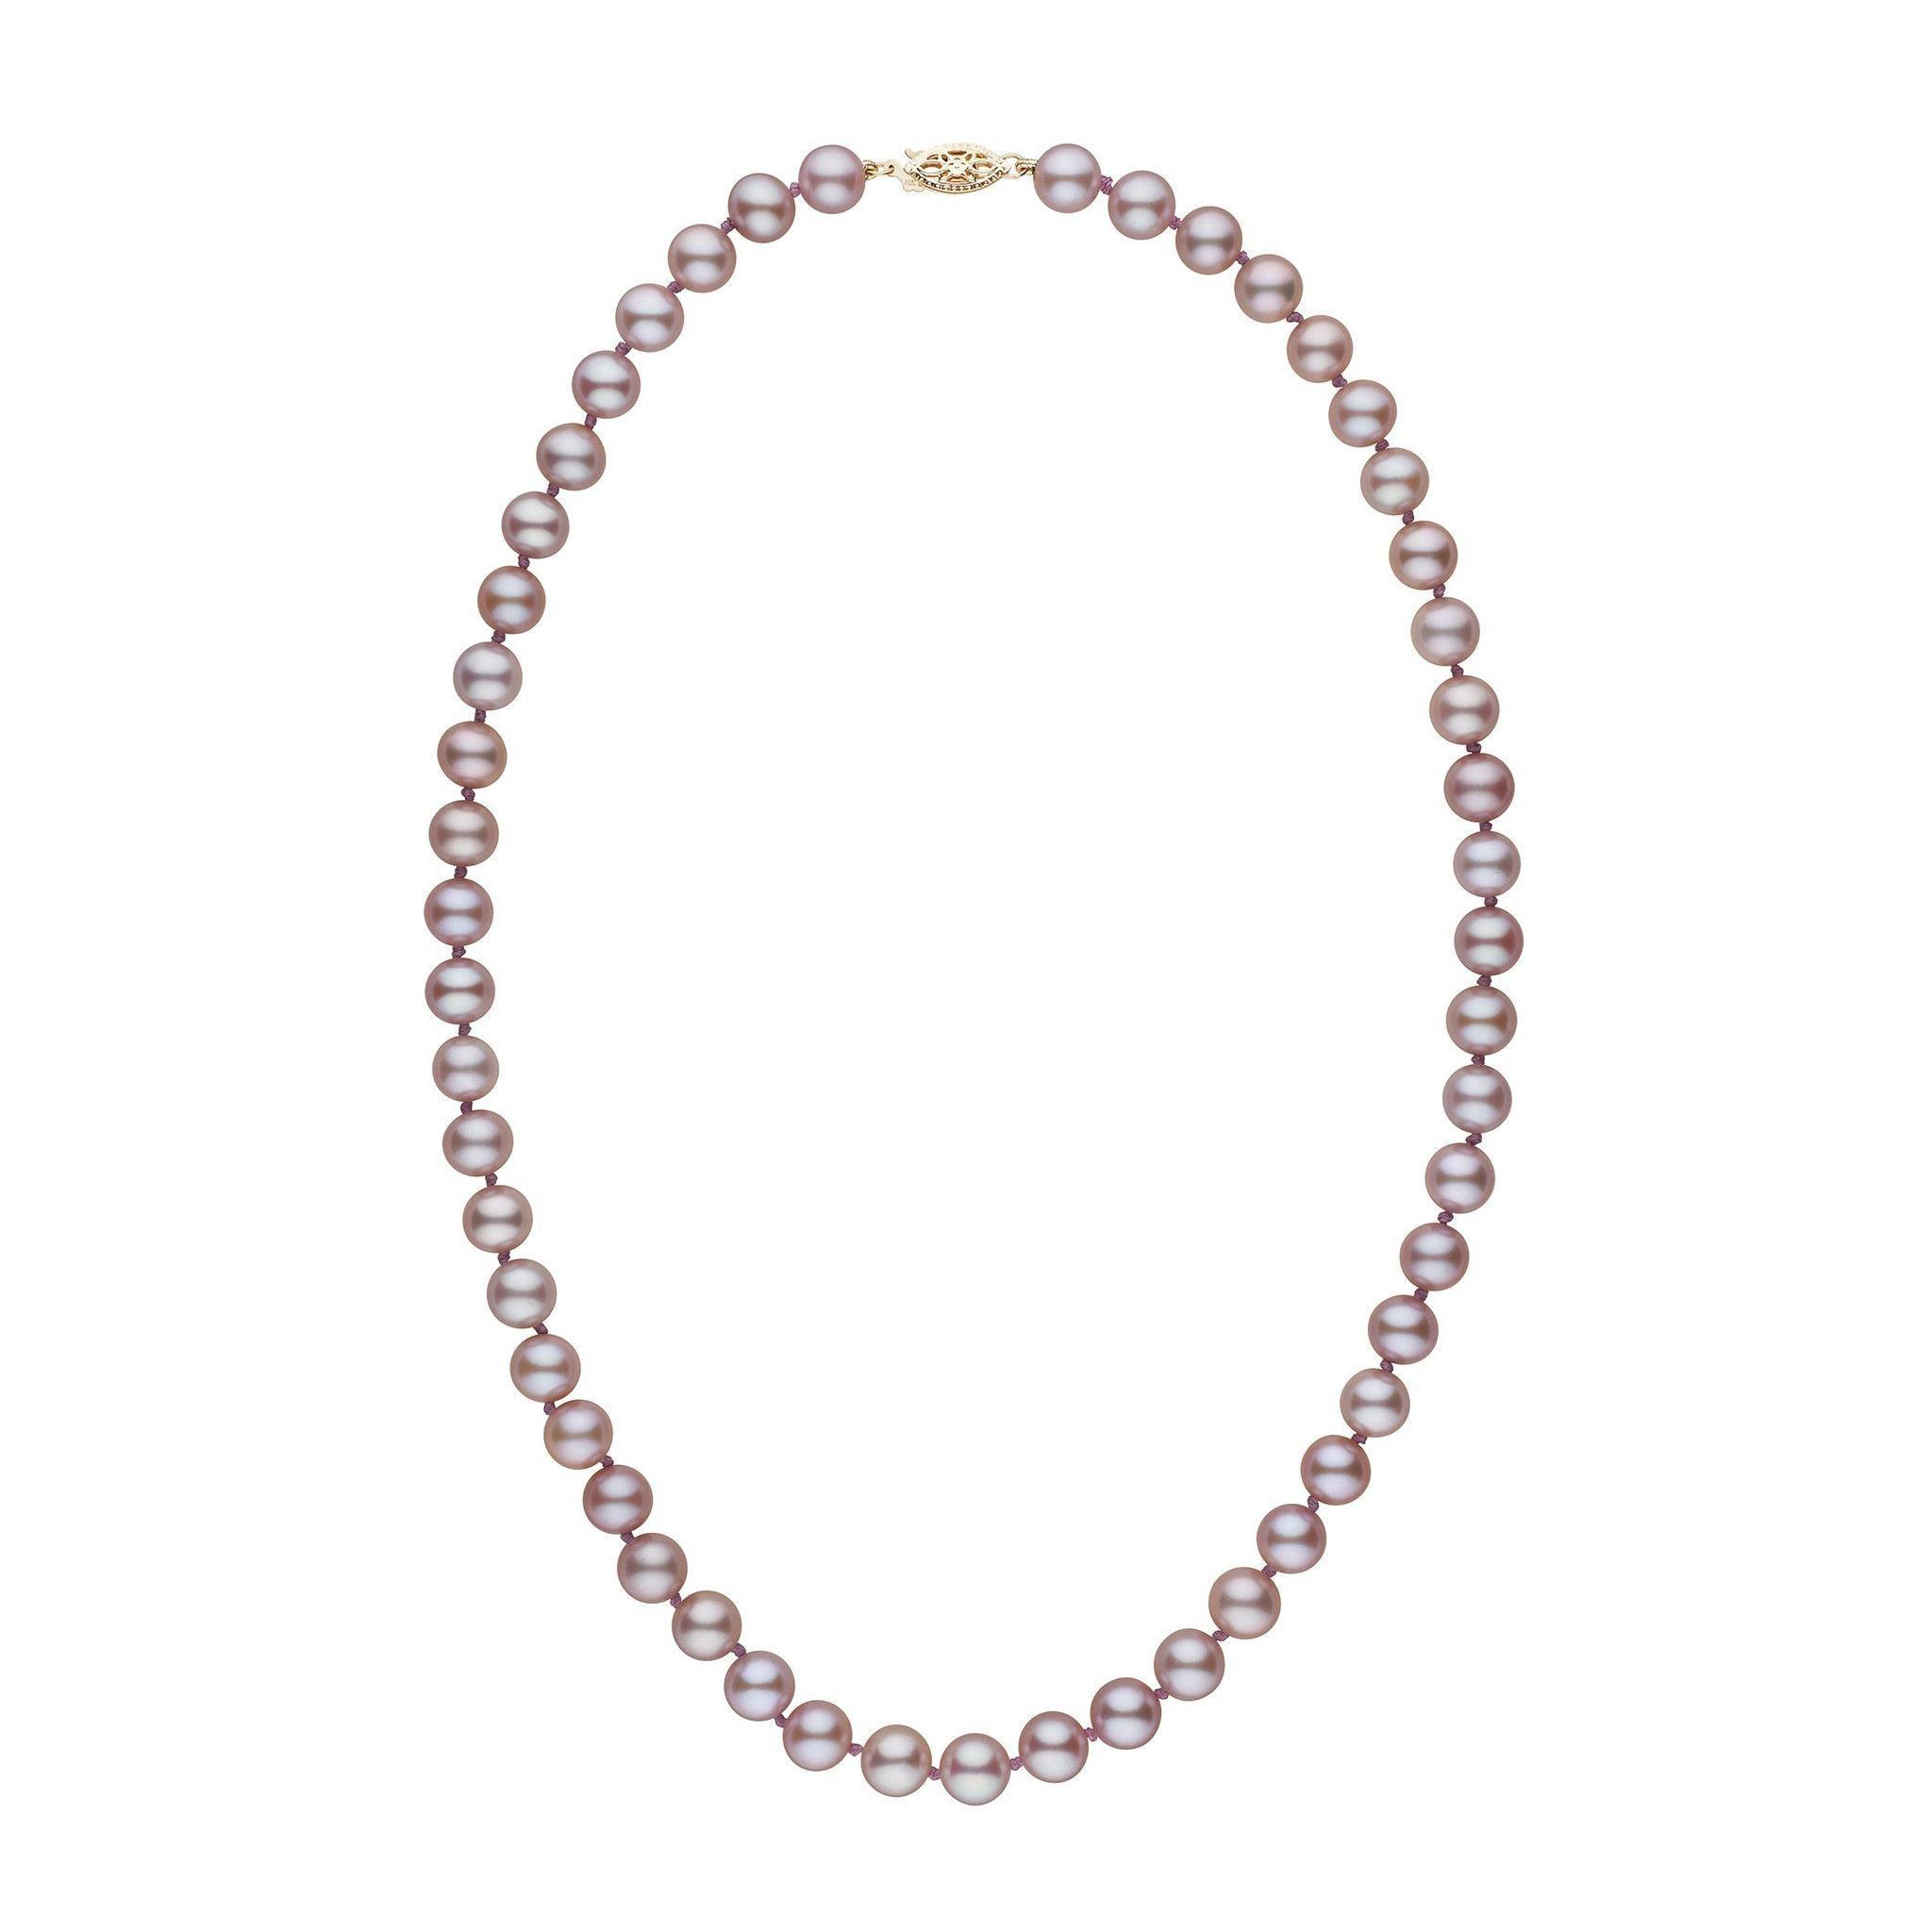 7.5-8.0 mm 18 inch AAA Lavender Freshwater Pearl Necklace